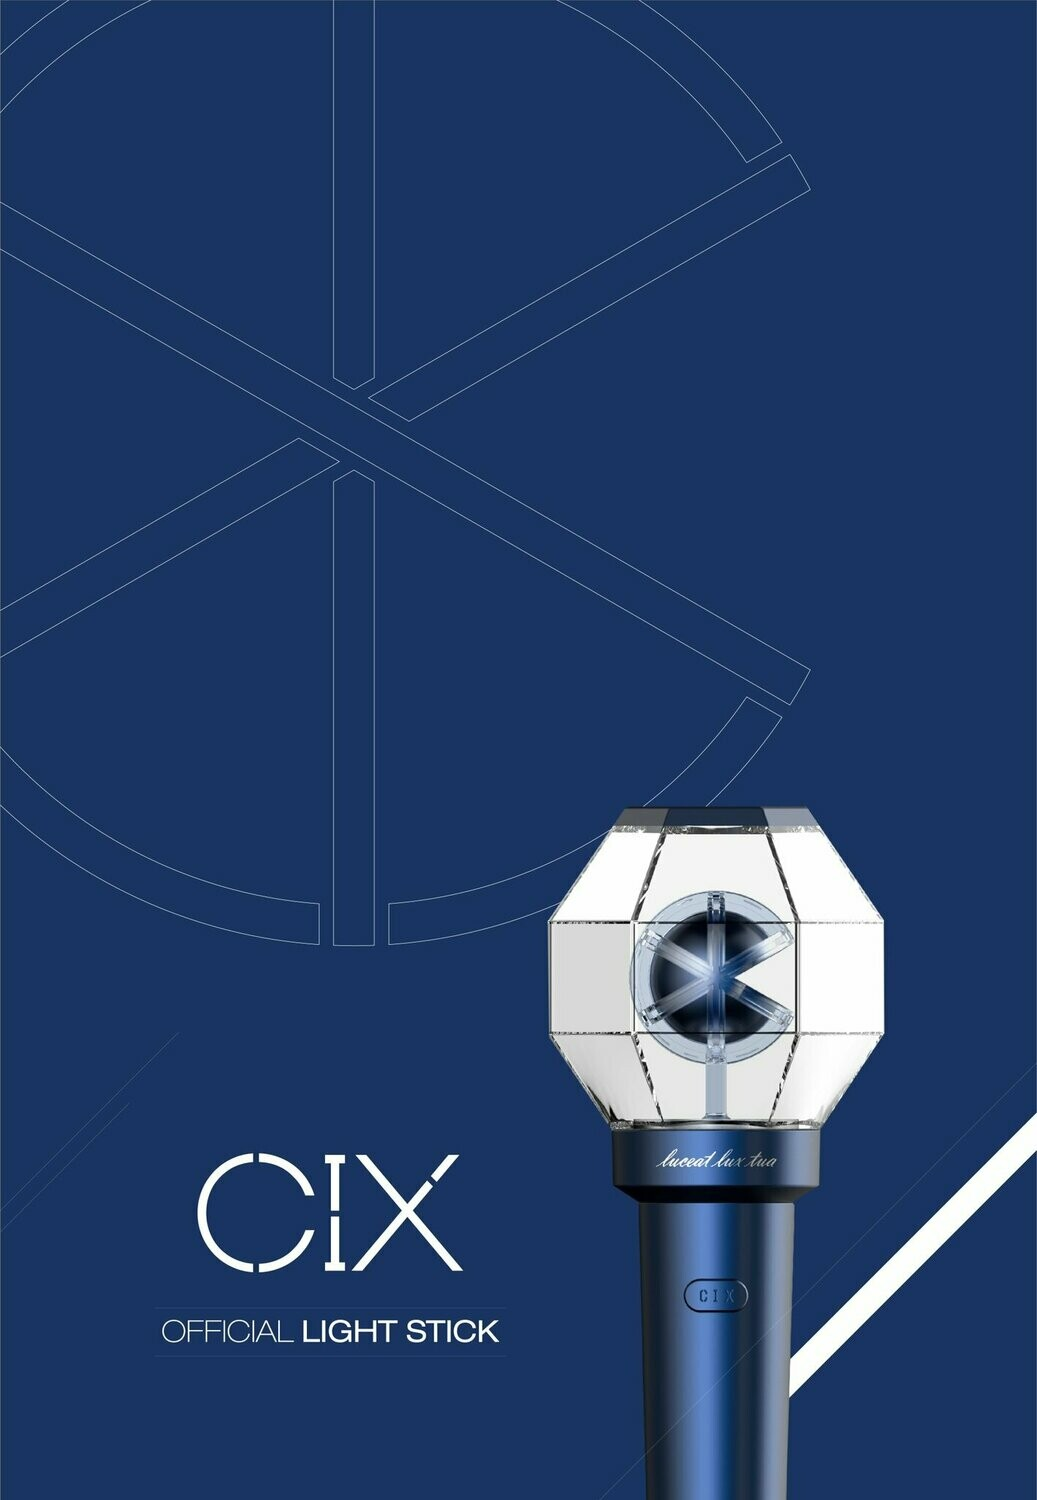 CIX Official Light Stick